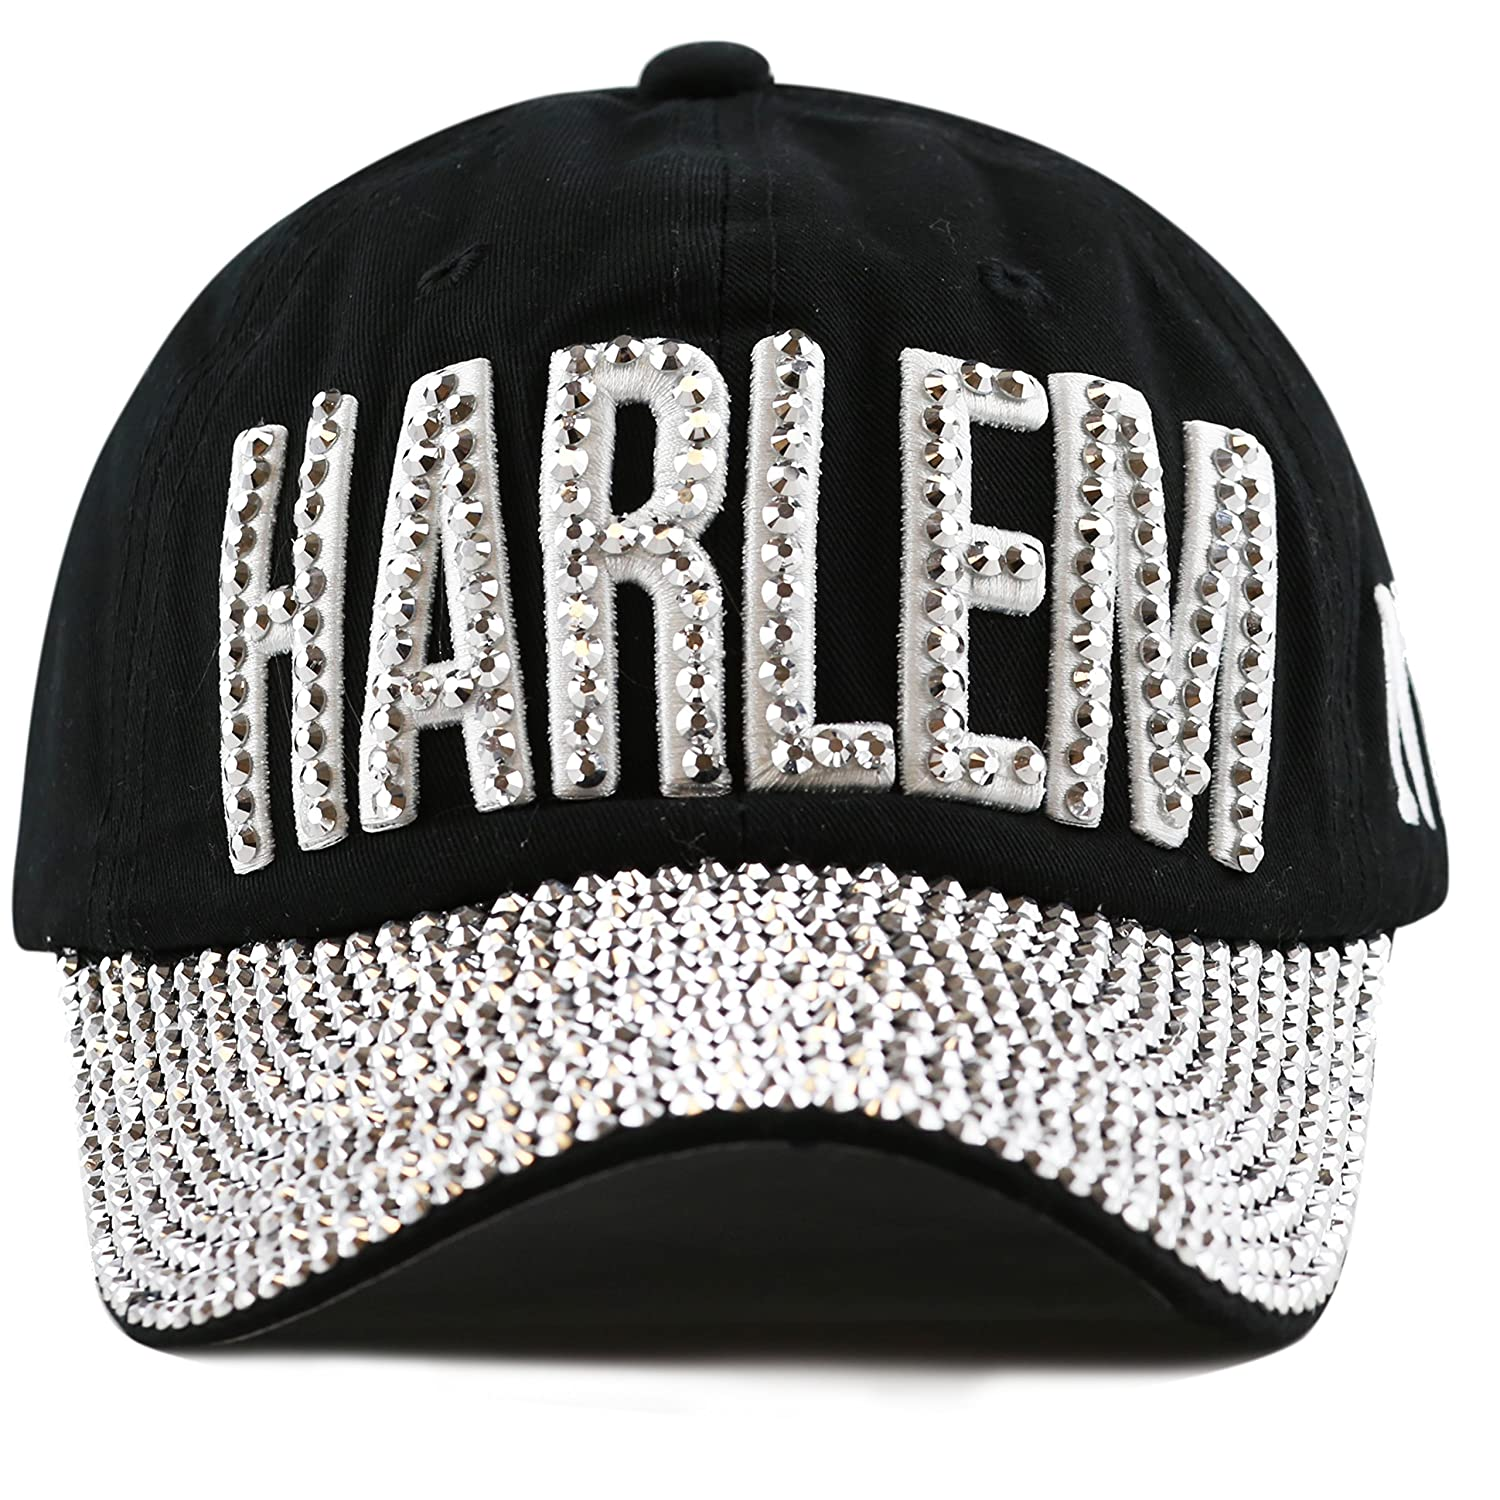 THE HAT DEPOT 200H4320 Bling Studded Rhinestone Harlem Adjustable Baseball  Cap-4colors (Black-Harlem) at Amazon Women s Clothing store  90b32b3f94e